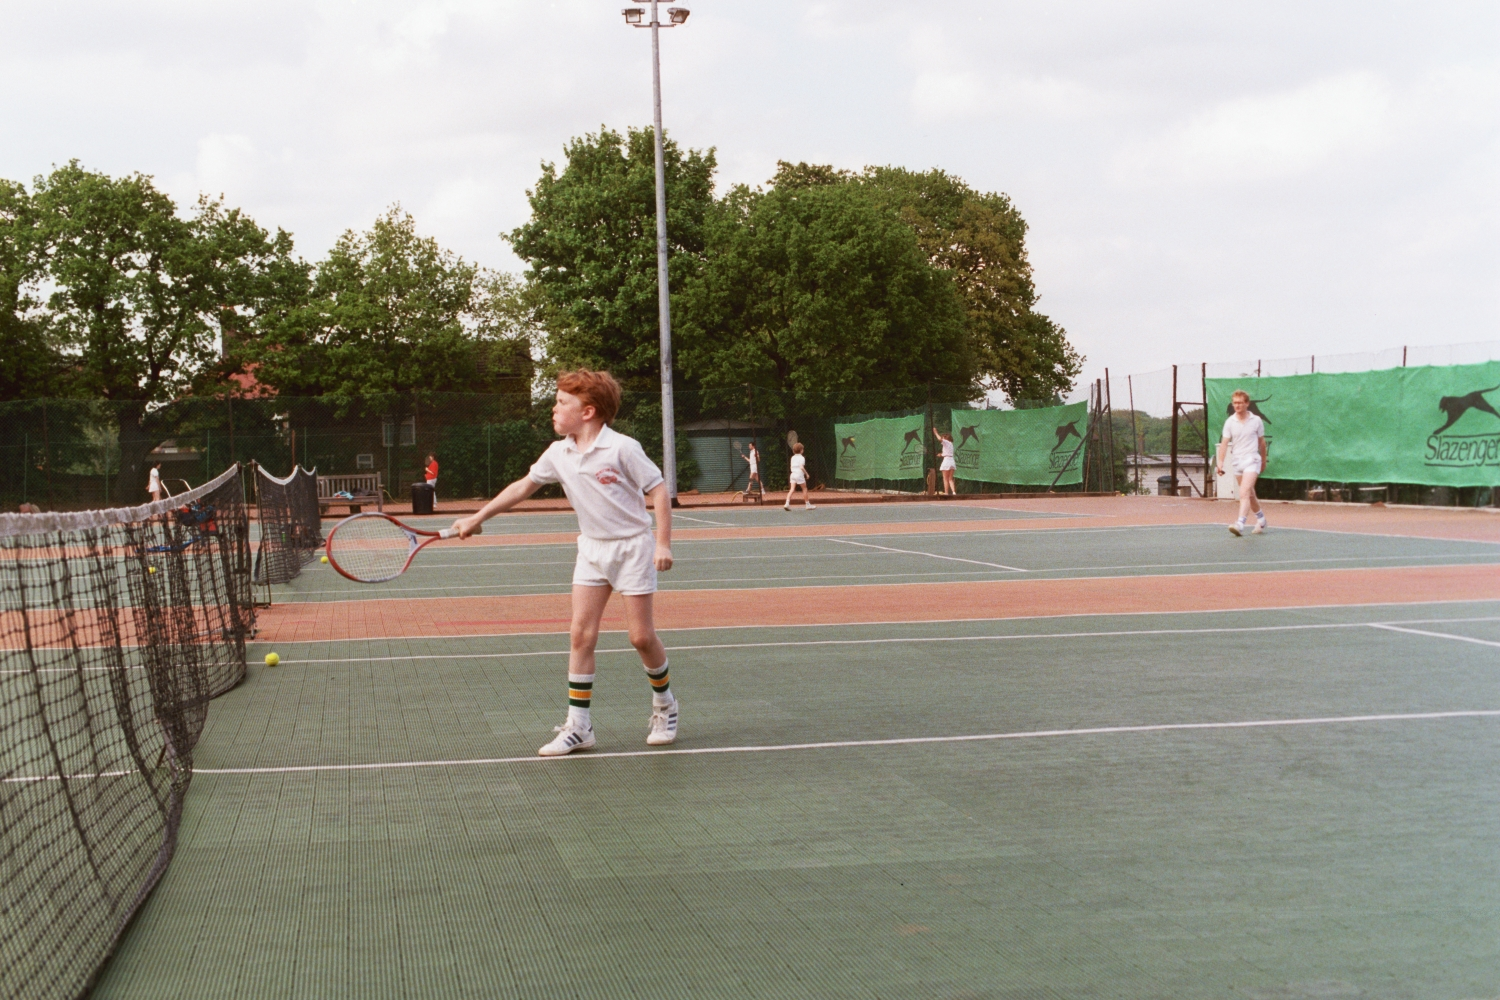 Ed Shearer plays Tennis